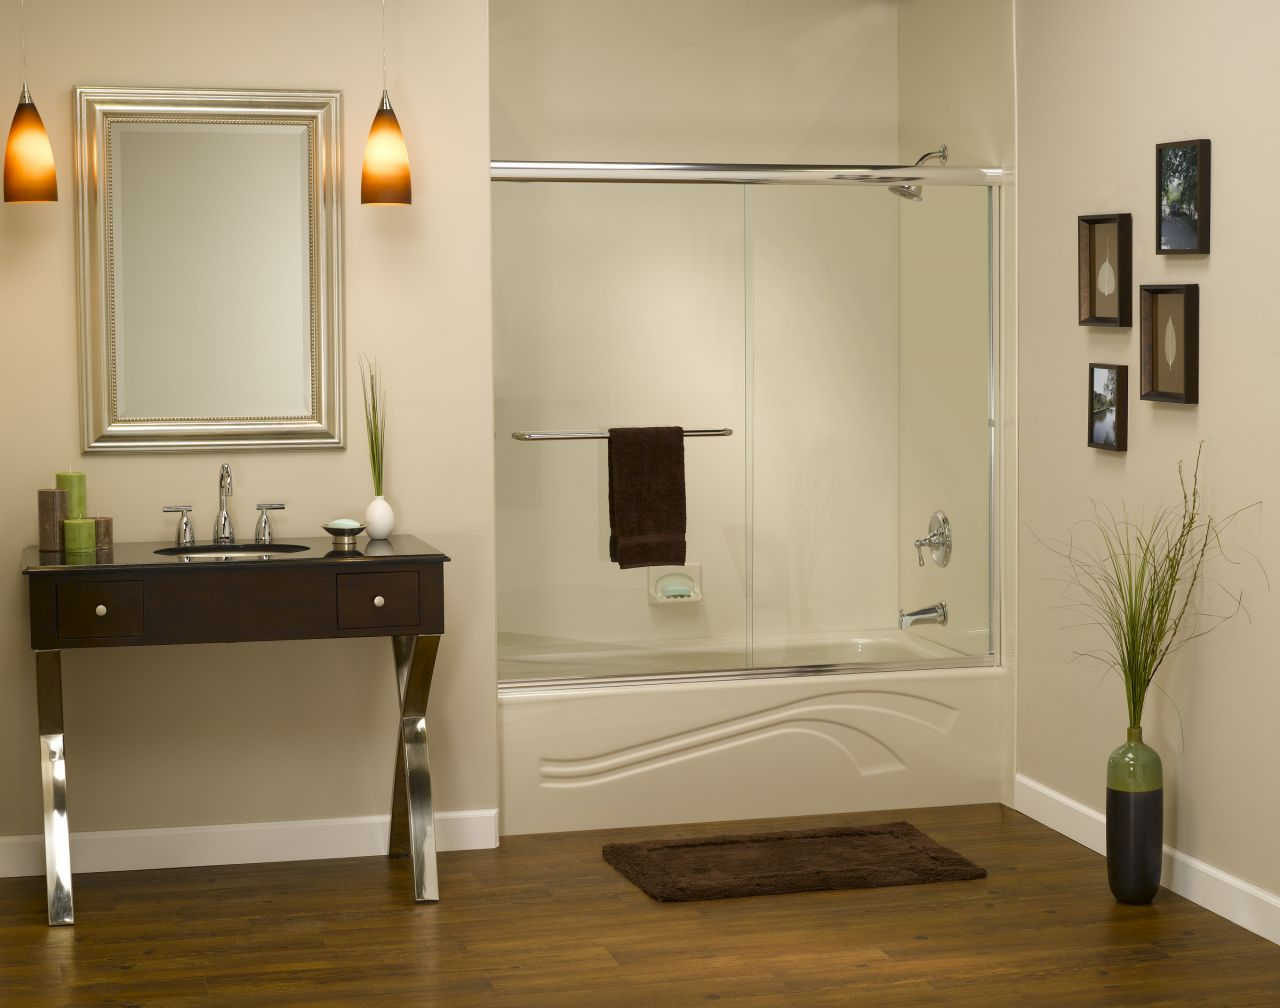 Bathtub Shower Alcove Remodeling Ideas Cleveland Akron Columbus Ohio - Cost effective bathroom remodel